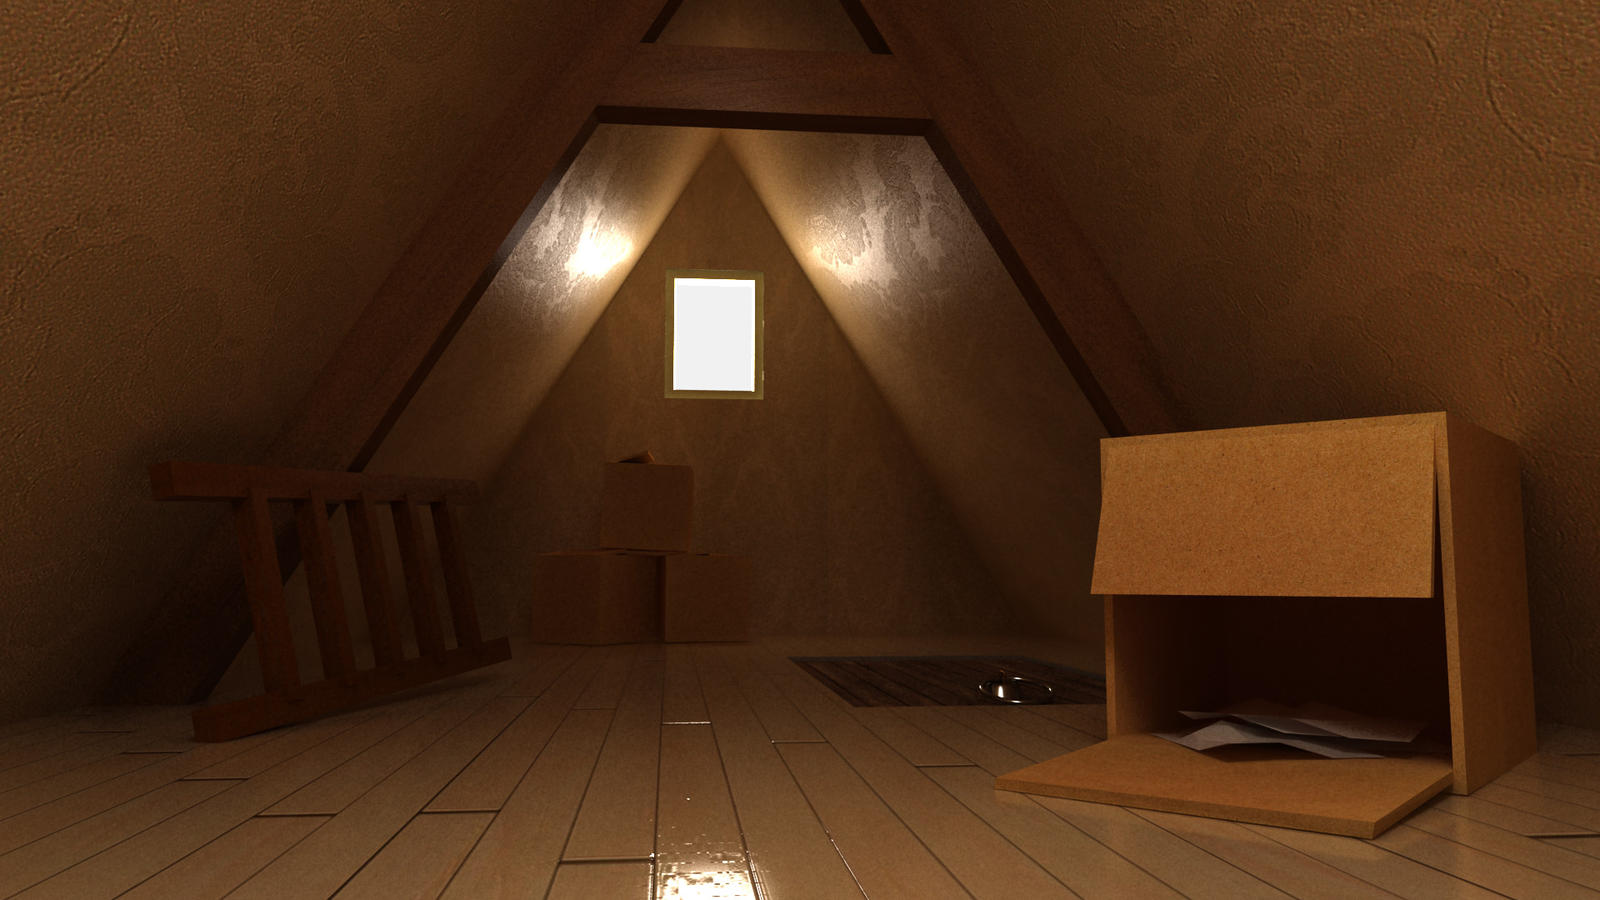 attic in a house by MrAnimator93 attic in a house by MrAnimator93